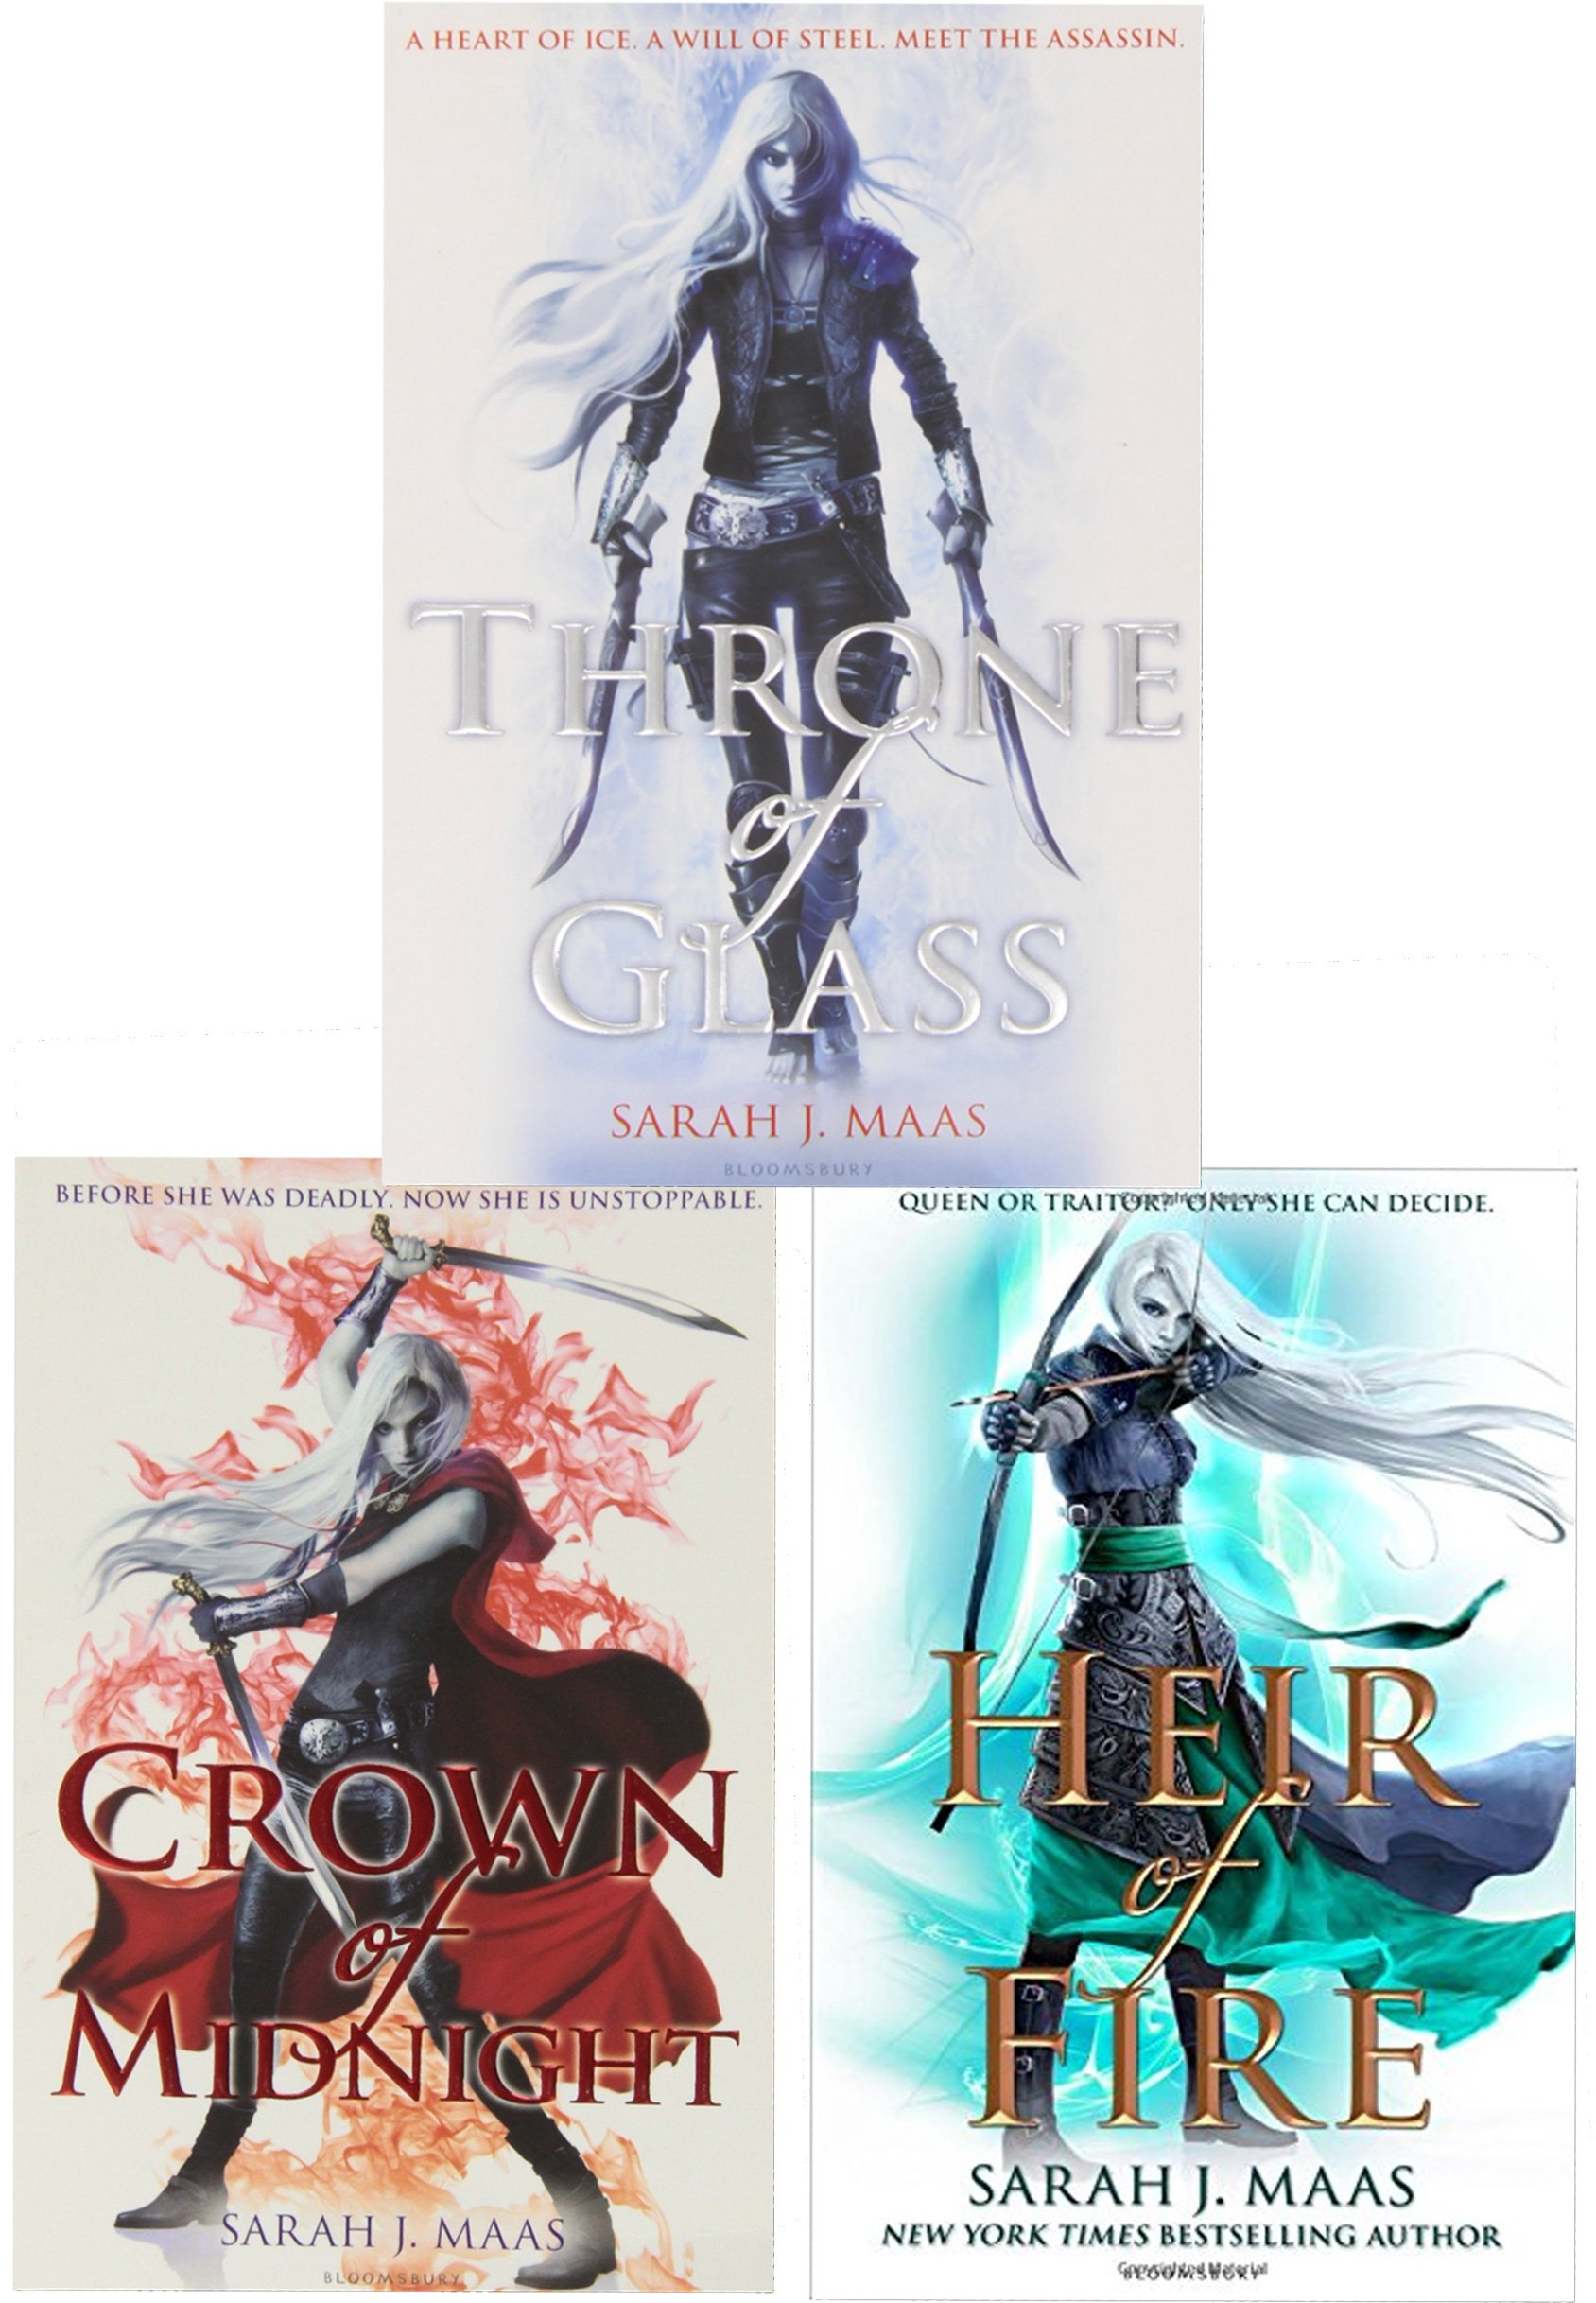 Sarah J Mass Throne Of Glass Series Collection 3 Books Set Pack